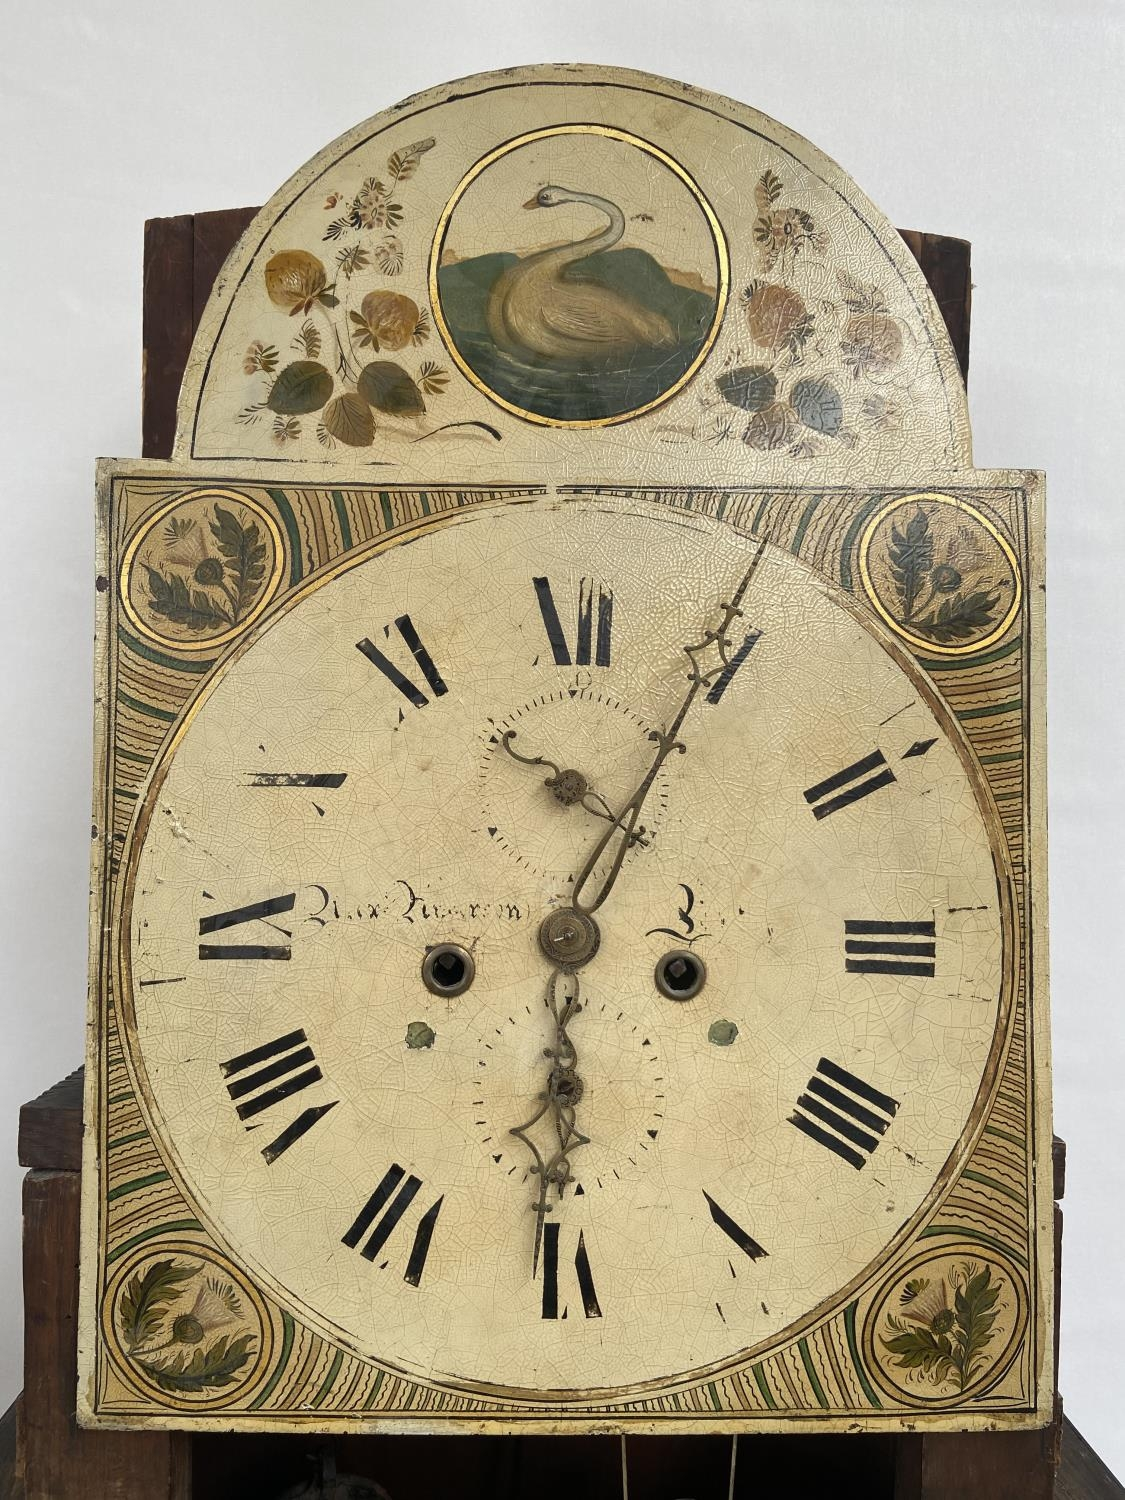 A 19th century Grandfather clock in a working condition [24x44x24cm] - Image 4 of 12